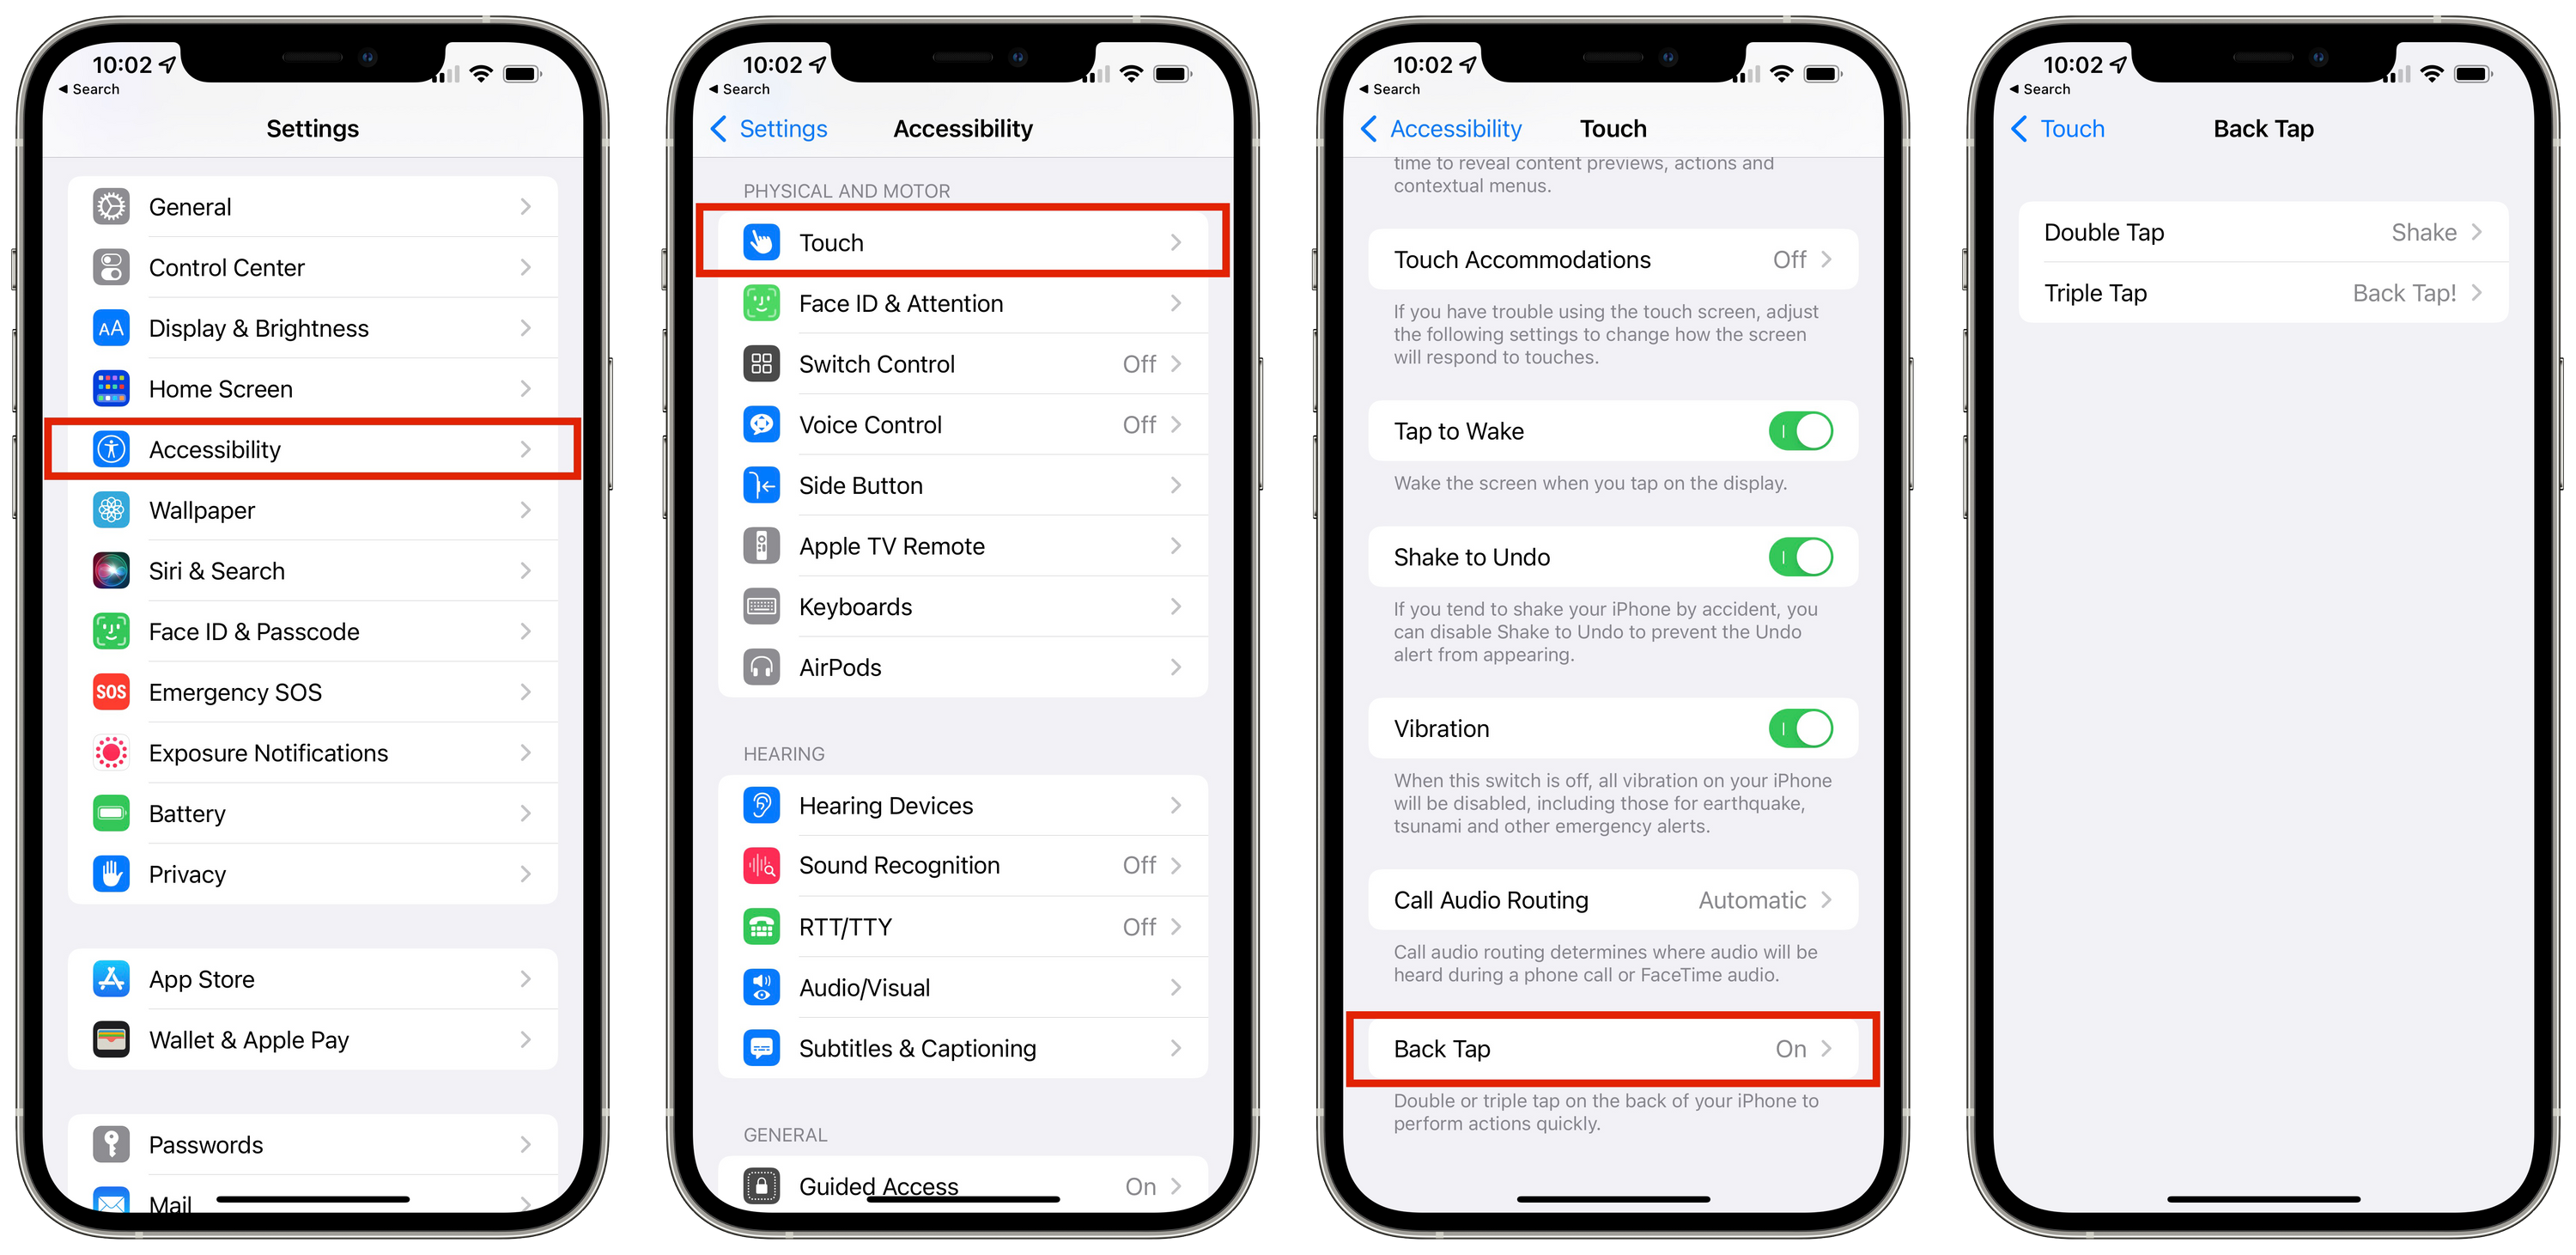 Get to Back Tap Through Accessibility Settings